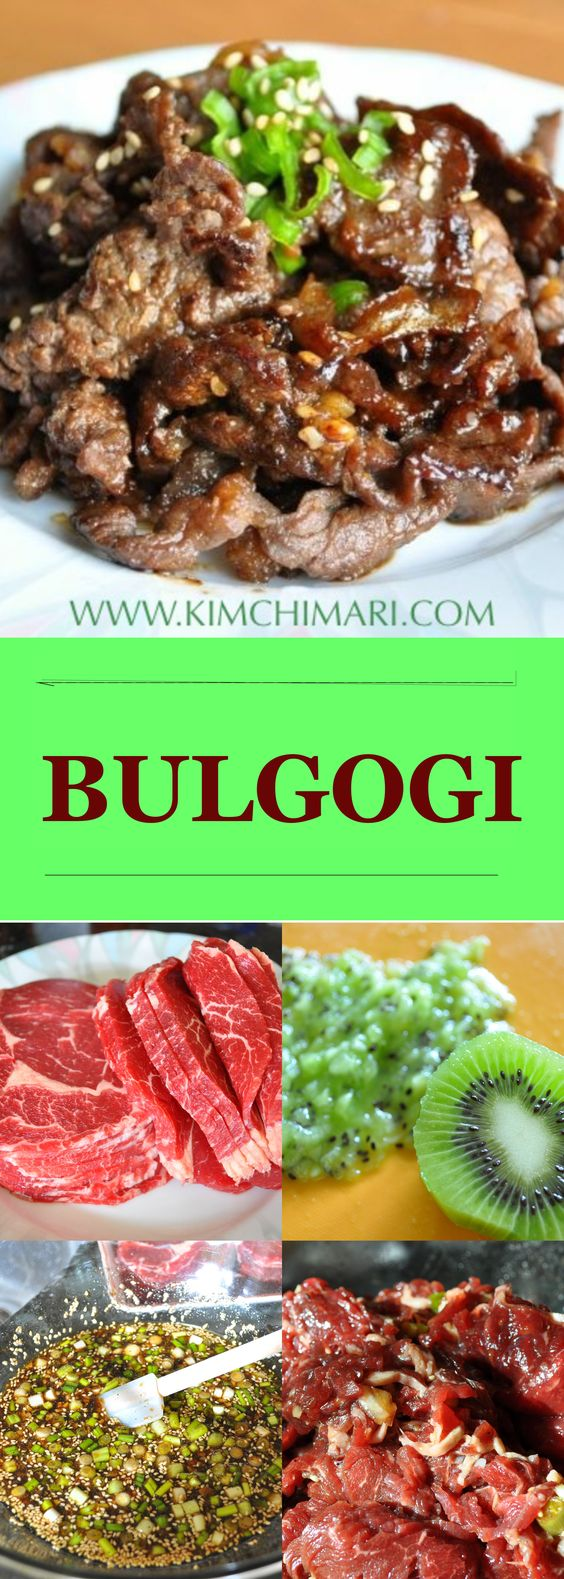 Bulgogi – Korean Beef BBQ #Bulgogi #Korean #Beef #BBQ #DESSERTS #HEALTHYFOOD #EASY_RECIPES #DINNER #LAUCH #DELICIOUS #EASY #HOLIDAYS #RECIPE #SPECIAL_DIET #WORLD_CUISINE #CAKE #GRILL #APPETIZERS #HEALTHY_RECIPES #DRINKS #COOKING_METHOD #ITALIAN_RECIPES #MEAT #VEGAN_RECIPES #COOKIES #PASTA #FRUIT #SALAD #SOUP_APPETIZERS #NON_ALCOHOLIC_DRINKS #MEAL_PLANNING #VEGETABLES #SOUP #PASTRY #CHOCOLATE #DAIRY #ALCOHOLIC_DRINKS #BULGUR_SALAD #BAKING #SNACKS #BEEF_RECIPES #MEAT_APPETIZERS #MEXICAN_RECIPES #BREAD #ASIAN_RECIPES #SEAFOOD_APPETIZERS #MUFFINS #BREAKFAST_AND_BRUNCH #CONDIMENTS #CUPCAKES #CHEESE #CHICKEN_RECIPES #PIE #COFFEE #NO_BAKE_DESSERTS #HEALTHY_SNACKS #SEAFOOD #GRAIN #LUNCHES_DINNERS #MEXICAN #QUICK_BREAD #LIQUOR